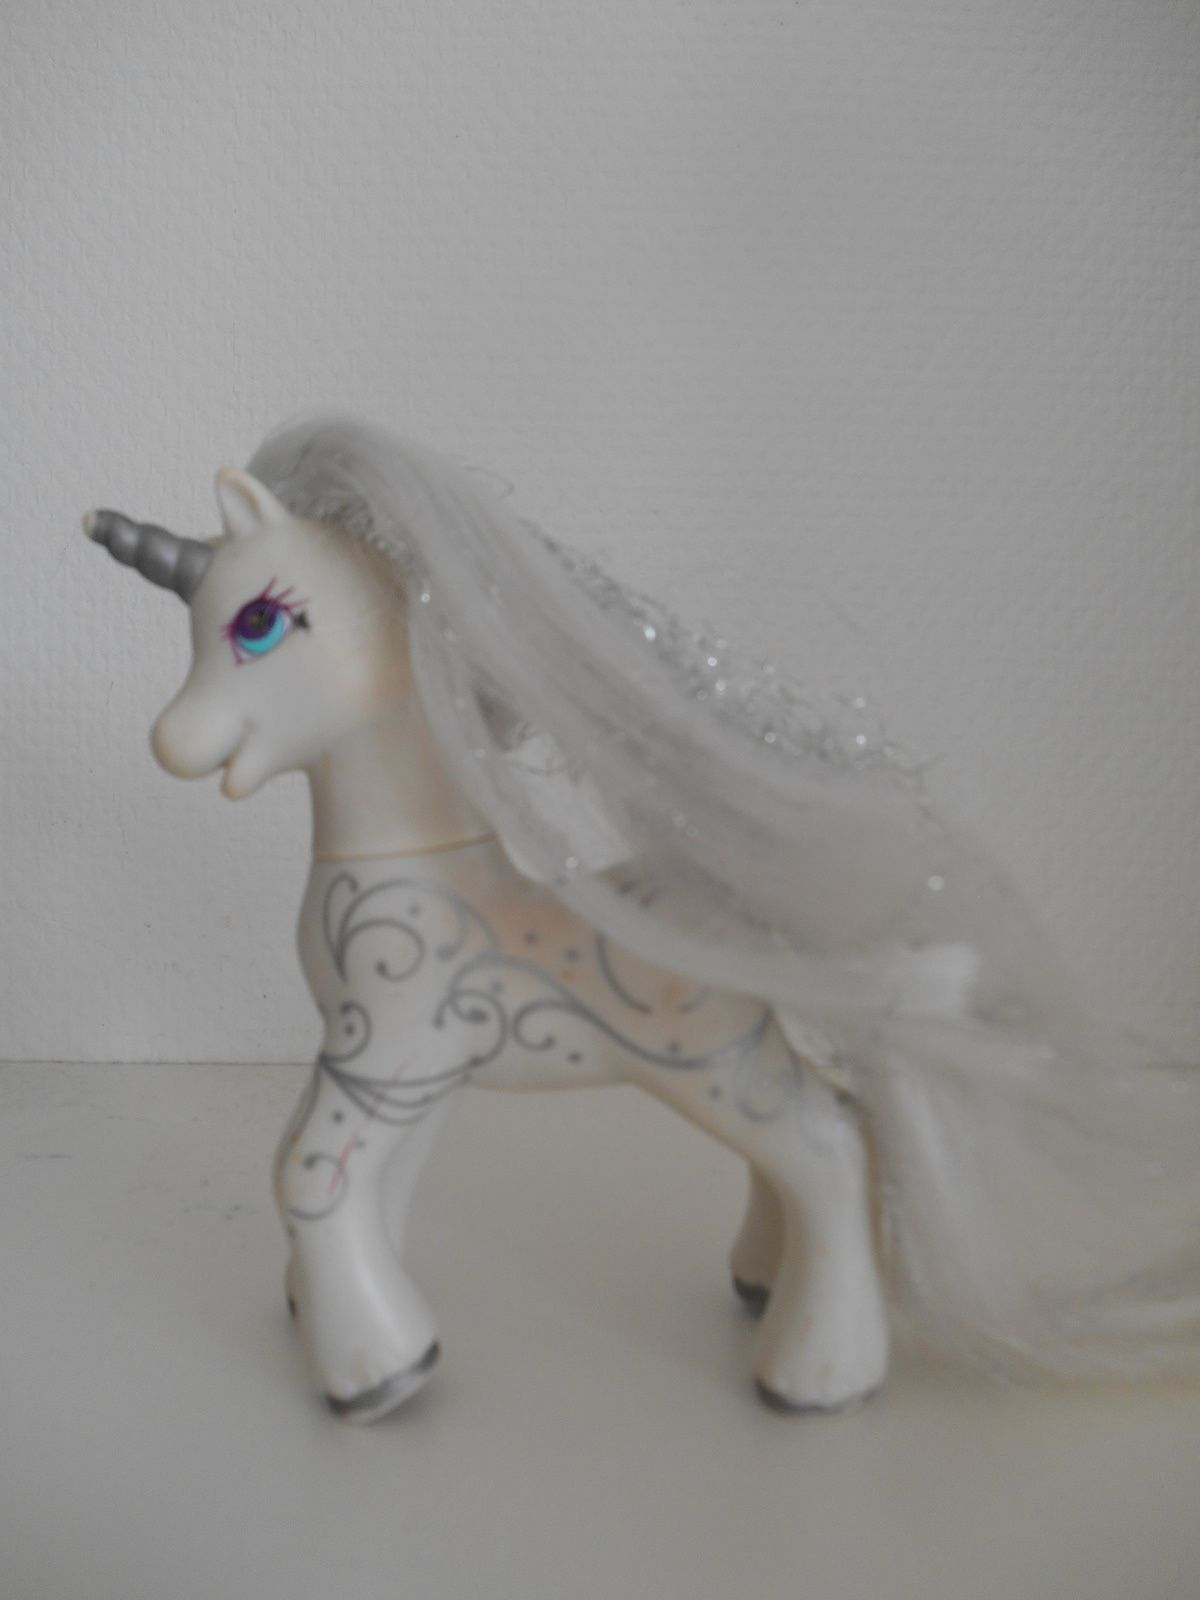 G2 Princesse scintillante / Princess Silver Swirl, exclu Europe, 1997.